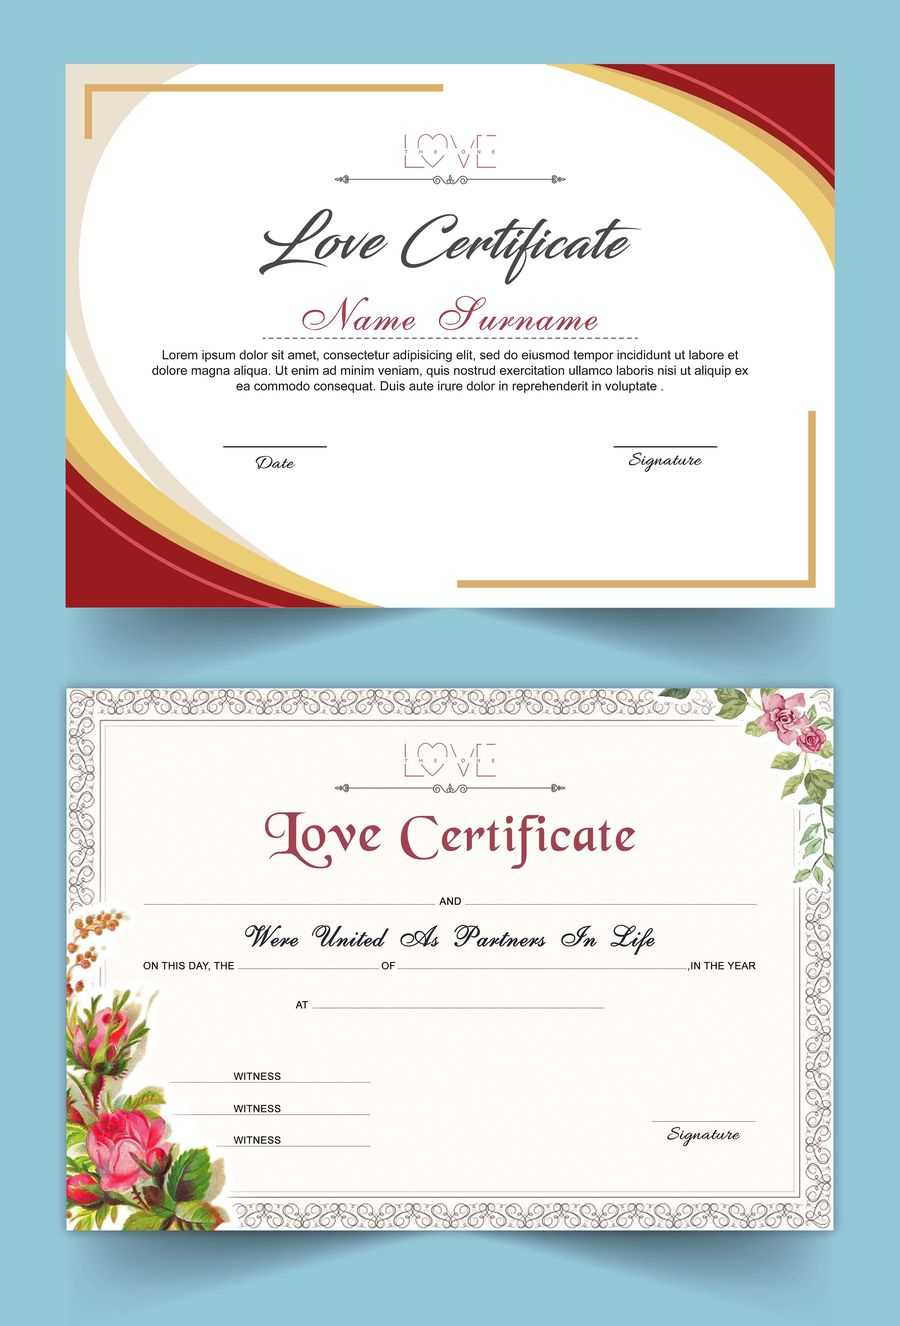 Entry #15Satishandsurabhi For Design A Love Certificate for Love Certificate Templates